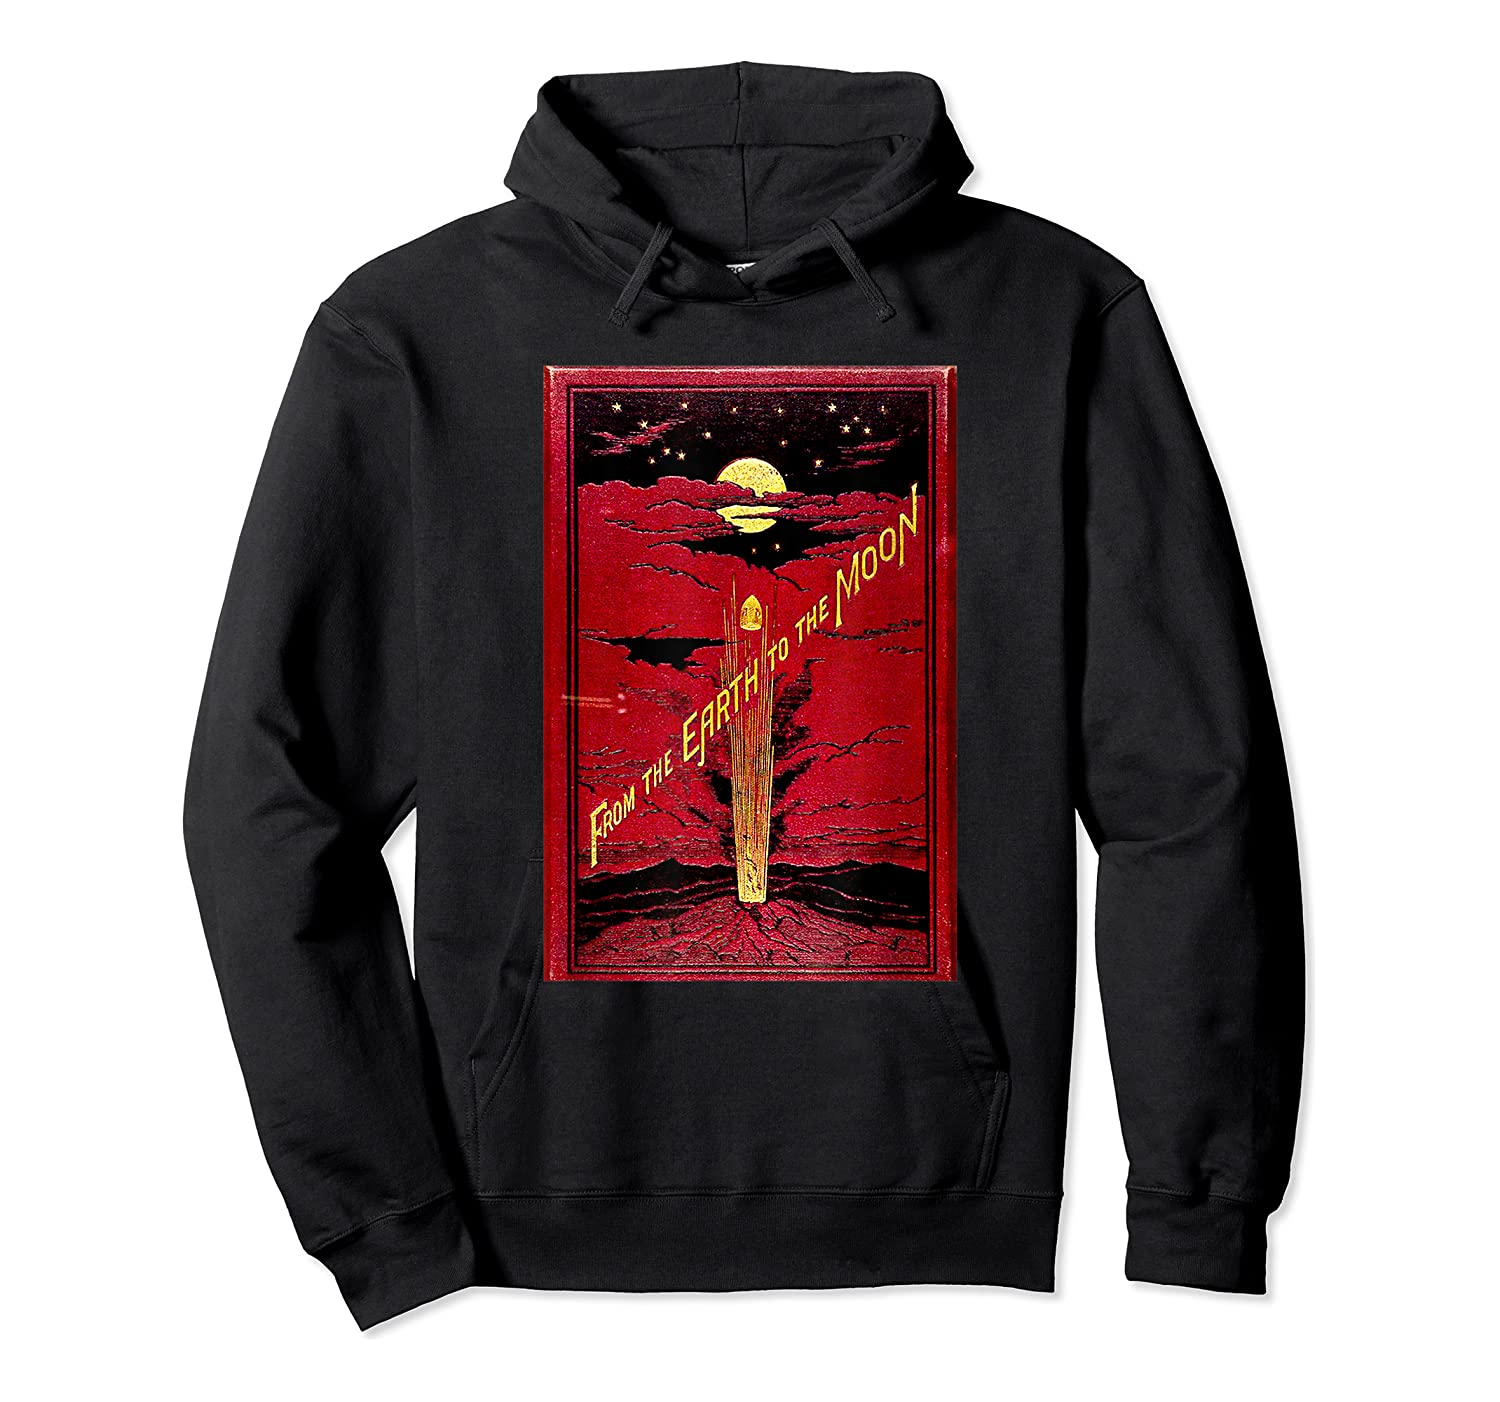 From The Earth To The Moon Jules Verne Book Cover Design Shirts Unisex Pullover Hoodie